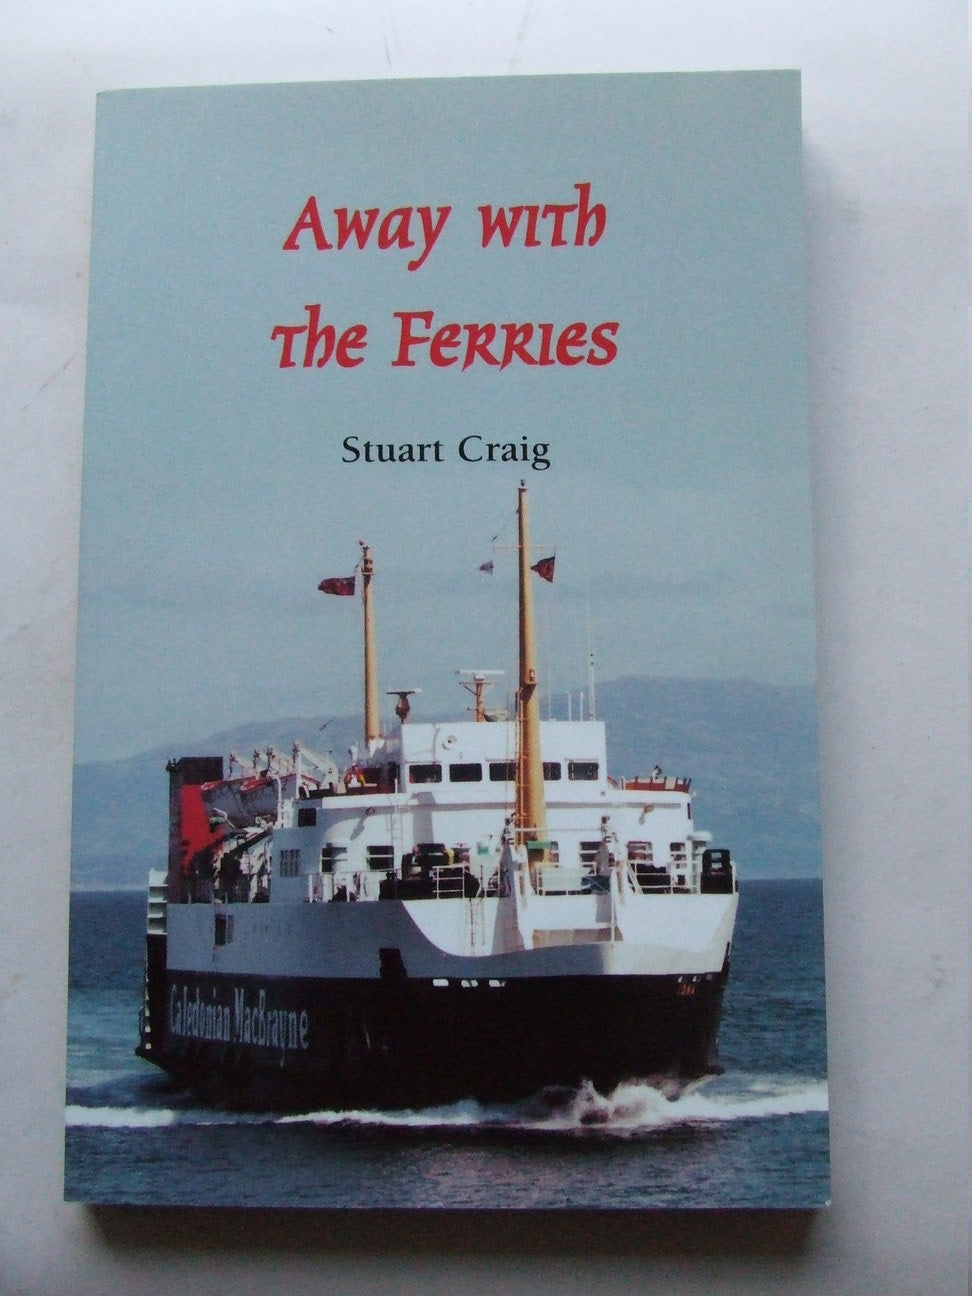 Away with the Ferries